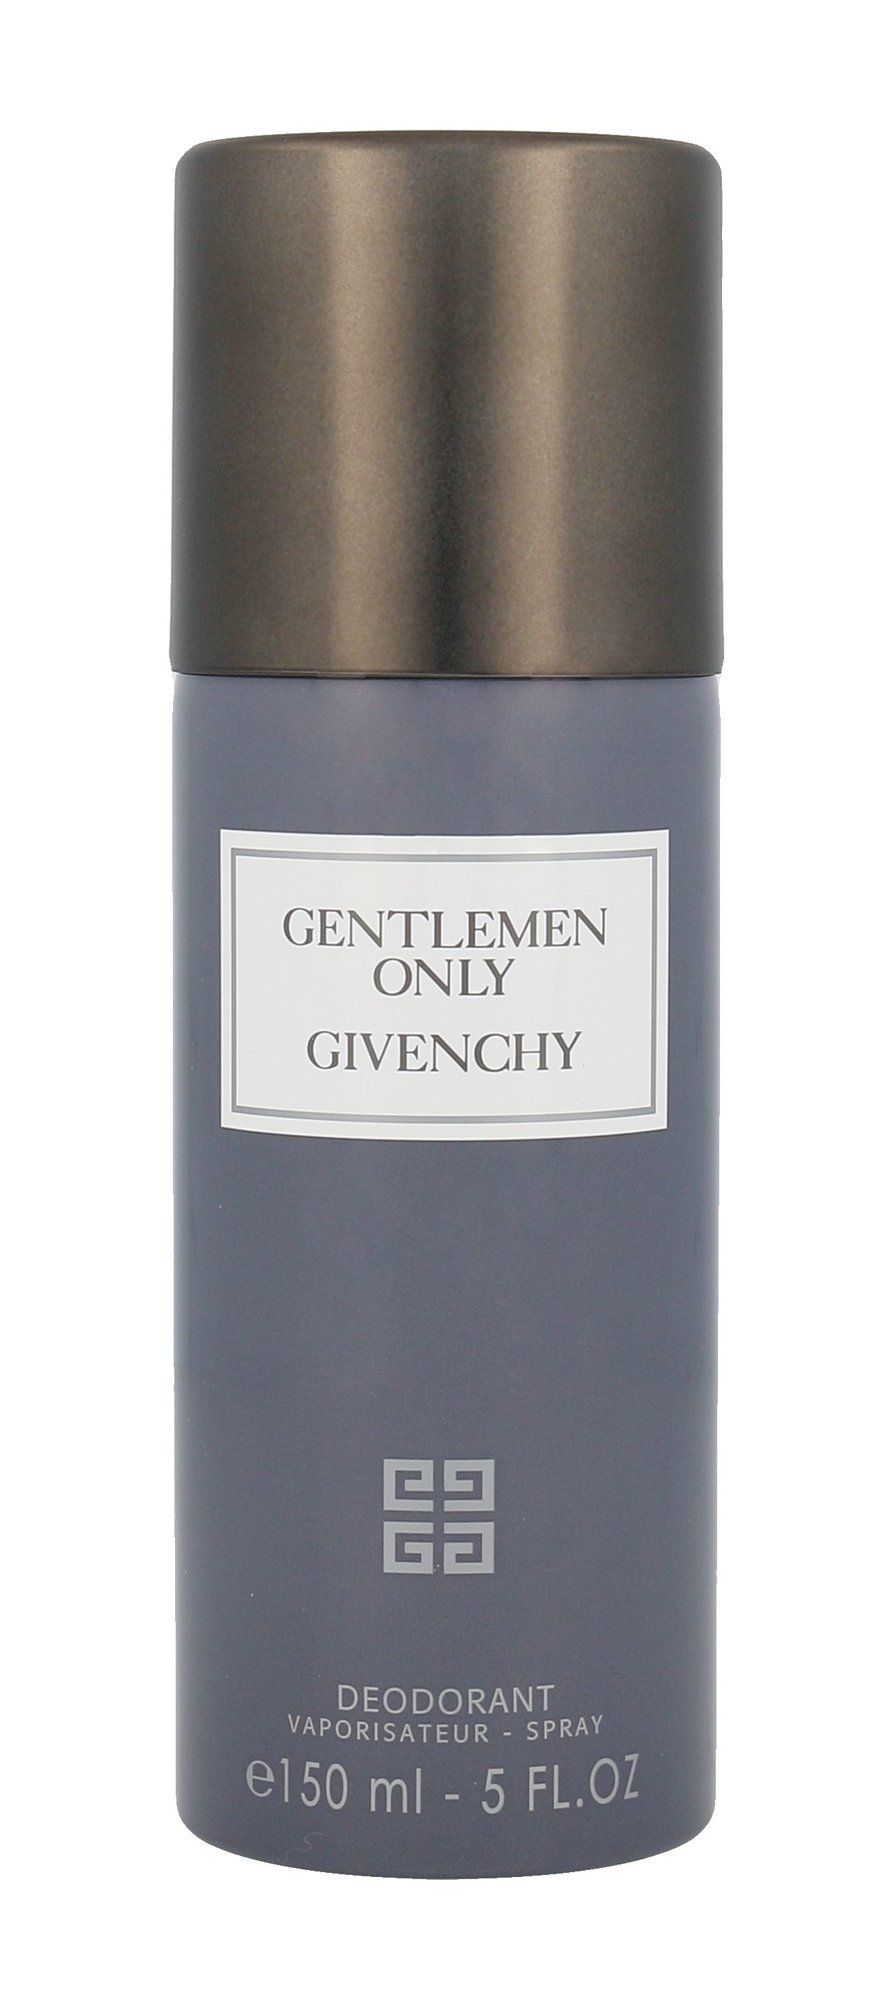 Givenchy Gentlemen Only Deodorant 150ml